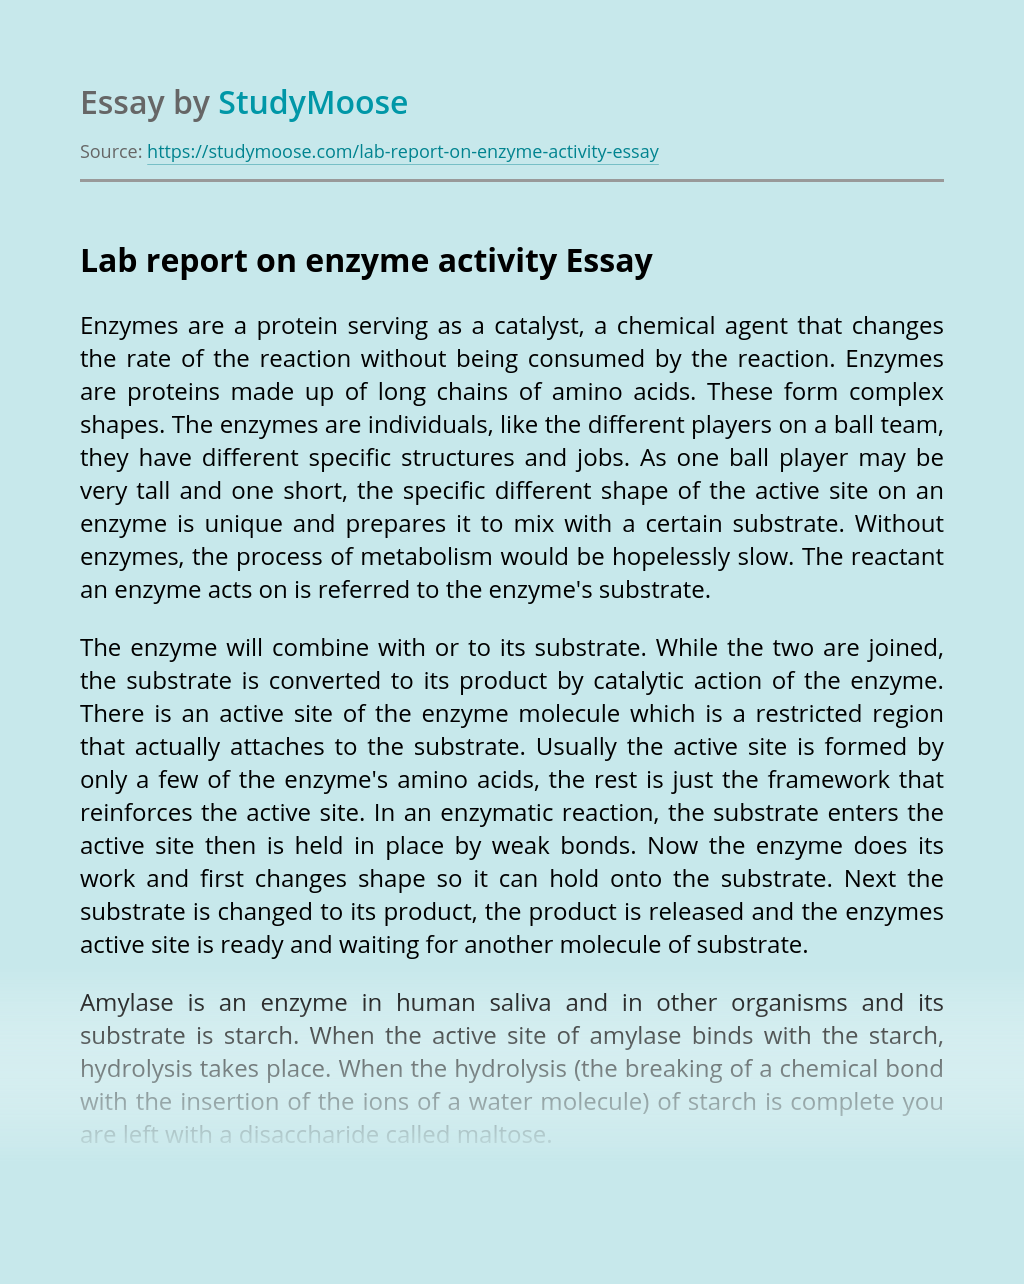 Lab report on enzyme activity